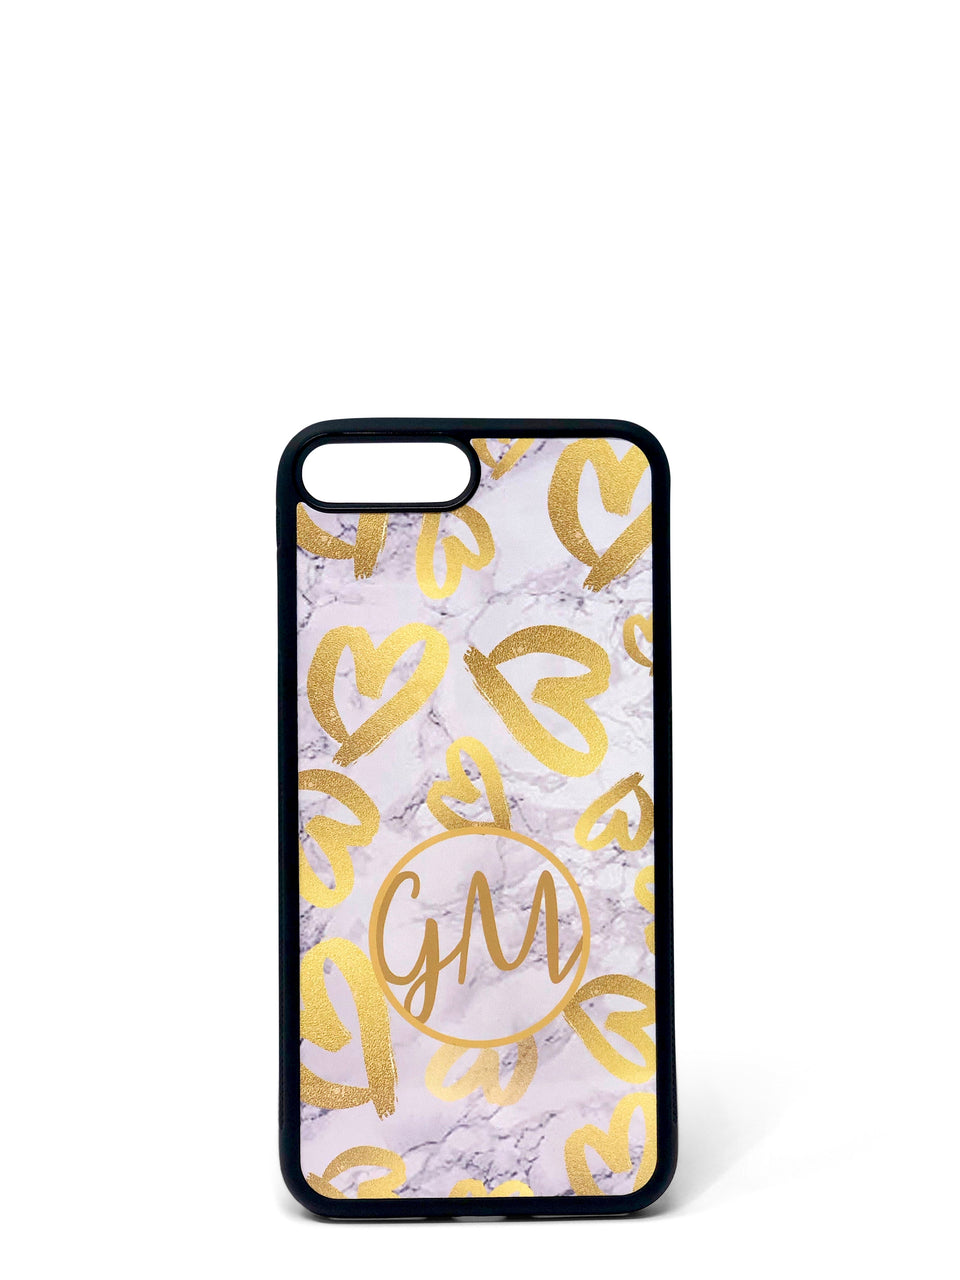 Phone Case - Gold Hearts on Marble